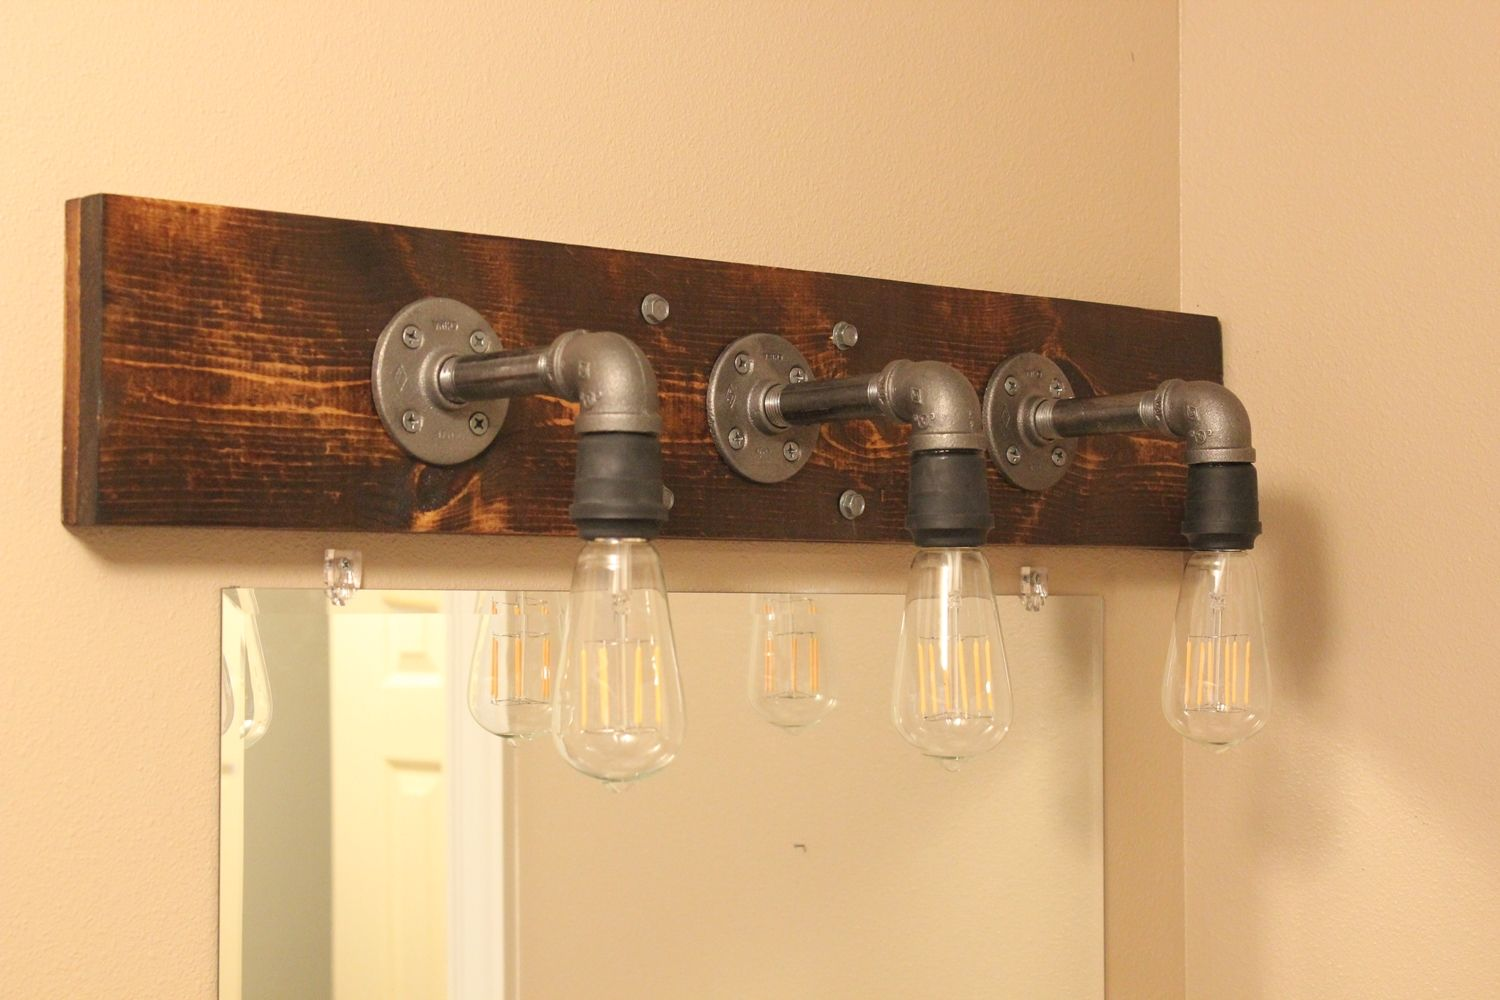 Bathroom Vanity Lights Diy : diy bathroom vanity light : Brightpulse.us